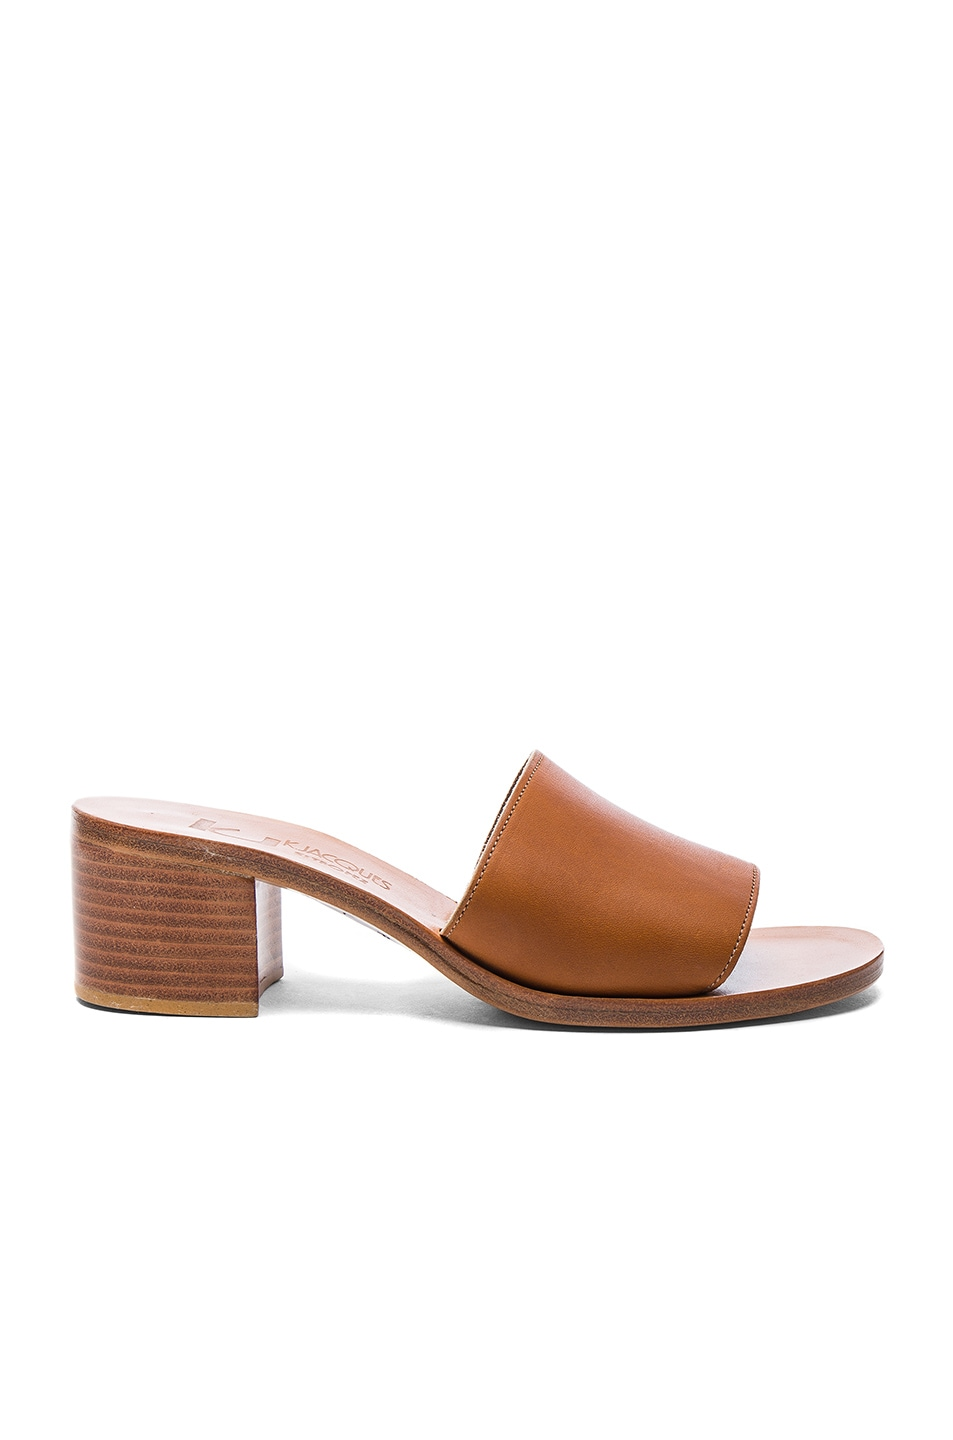 Image 1 of K Jacques Leather Caprika Sandals in Pul Natural